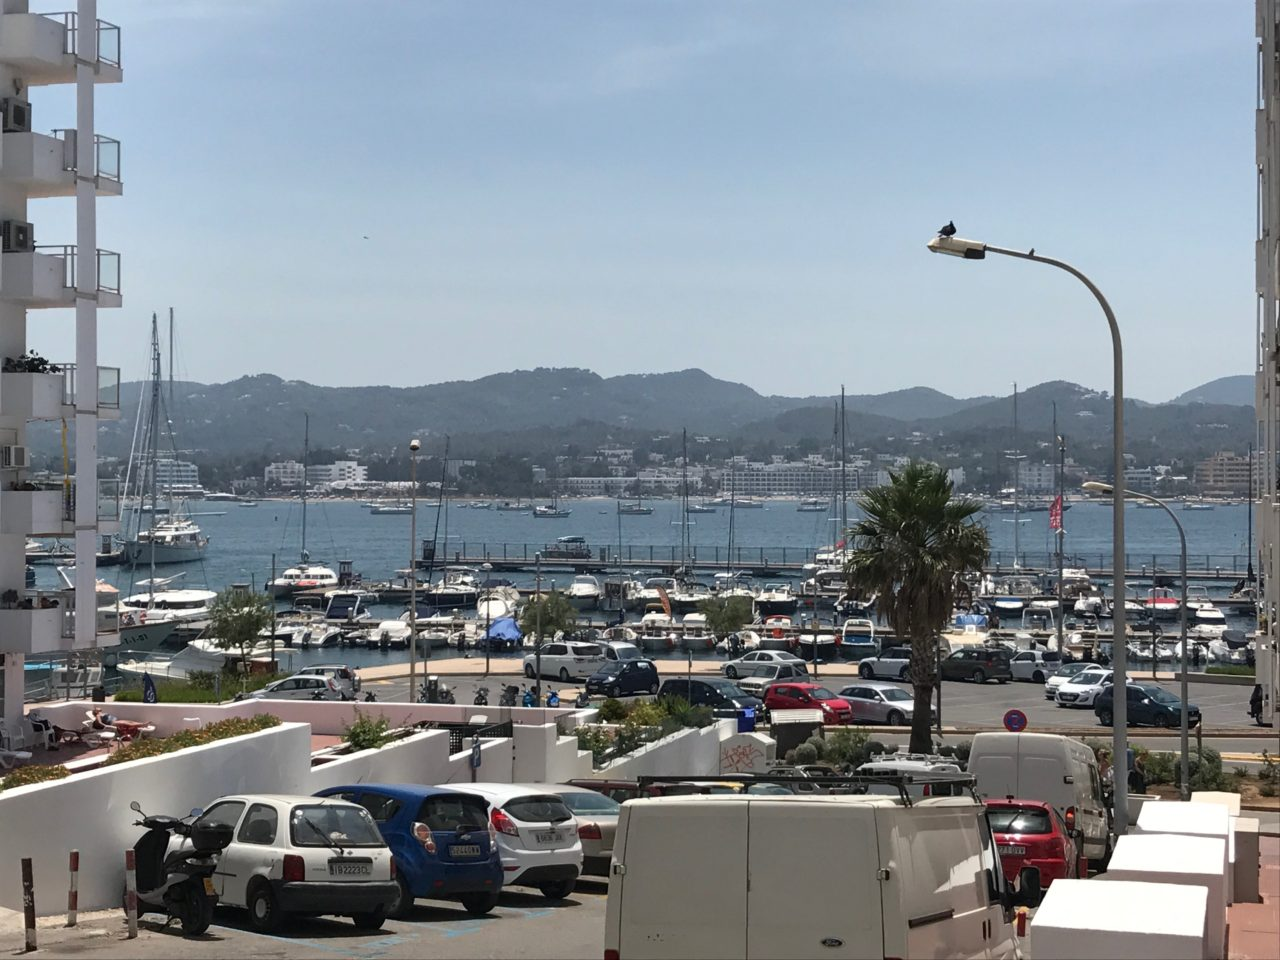 Harbor With Boats And Cars In Front Of It